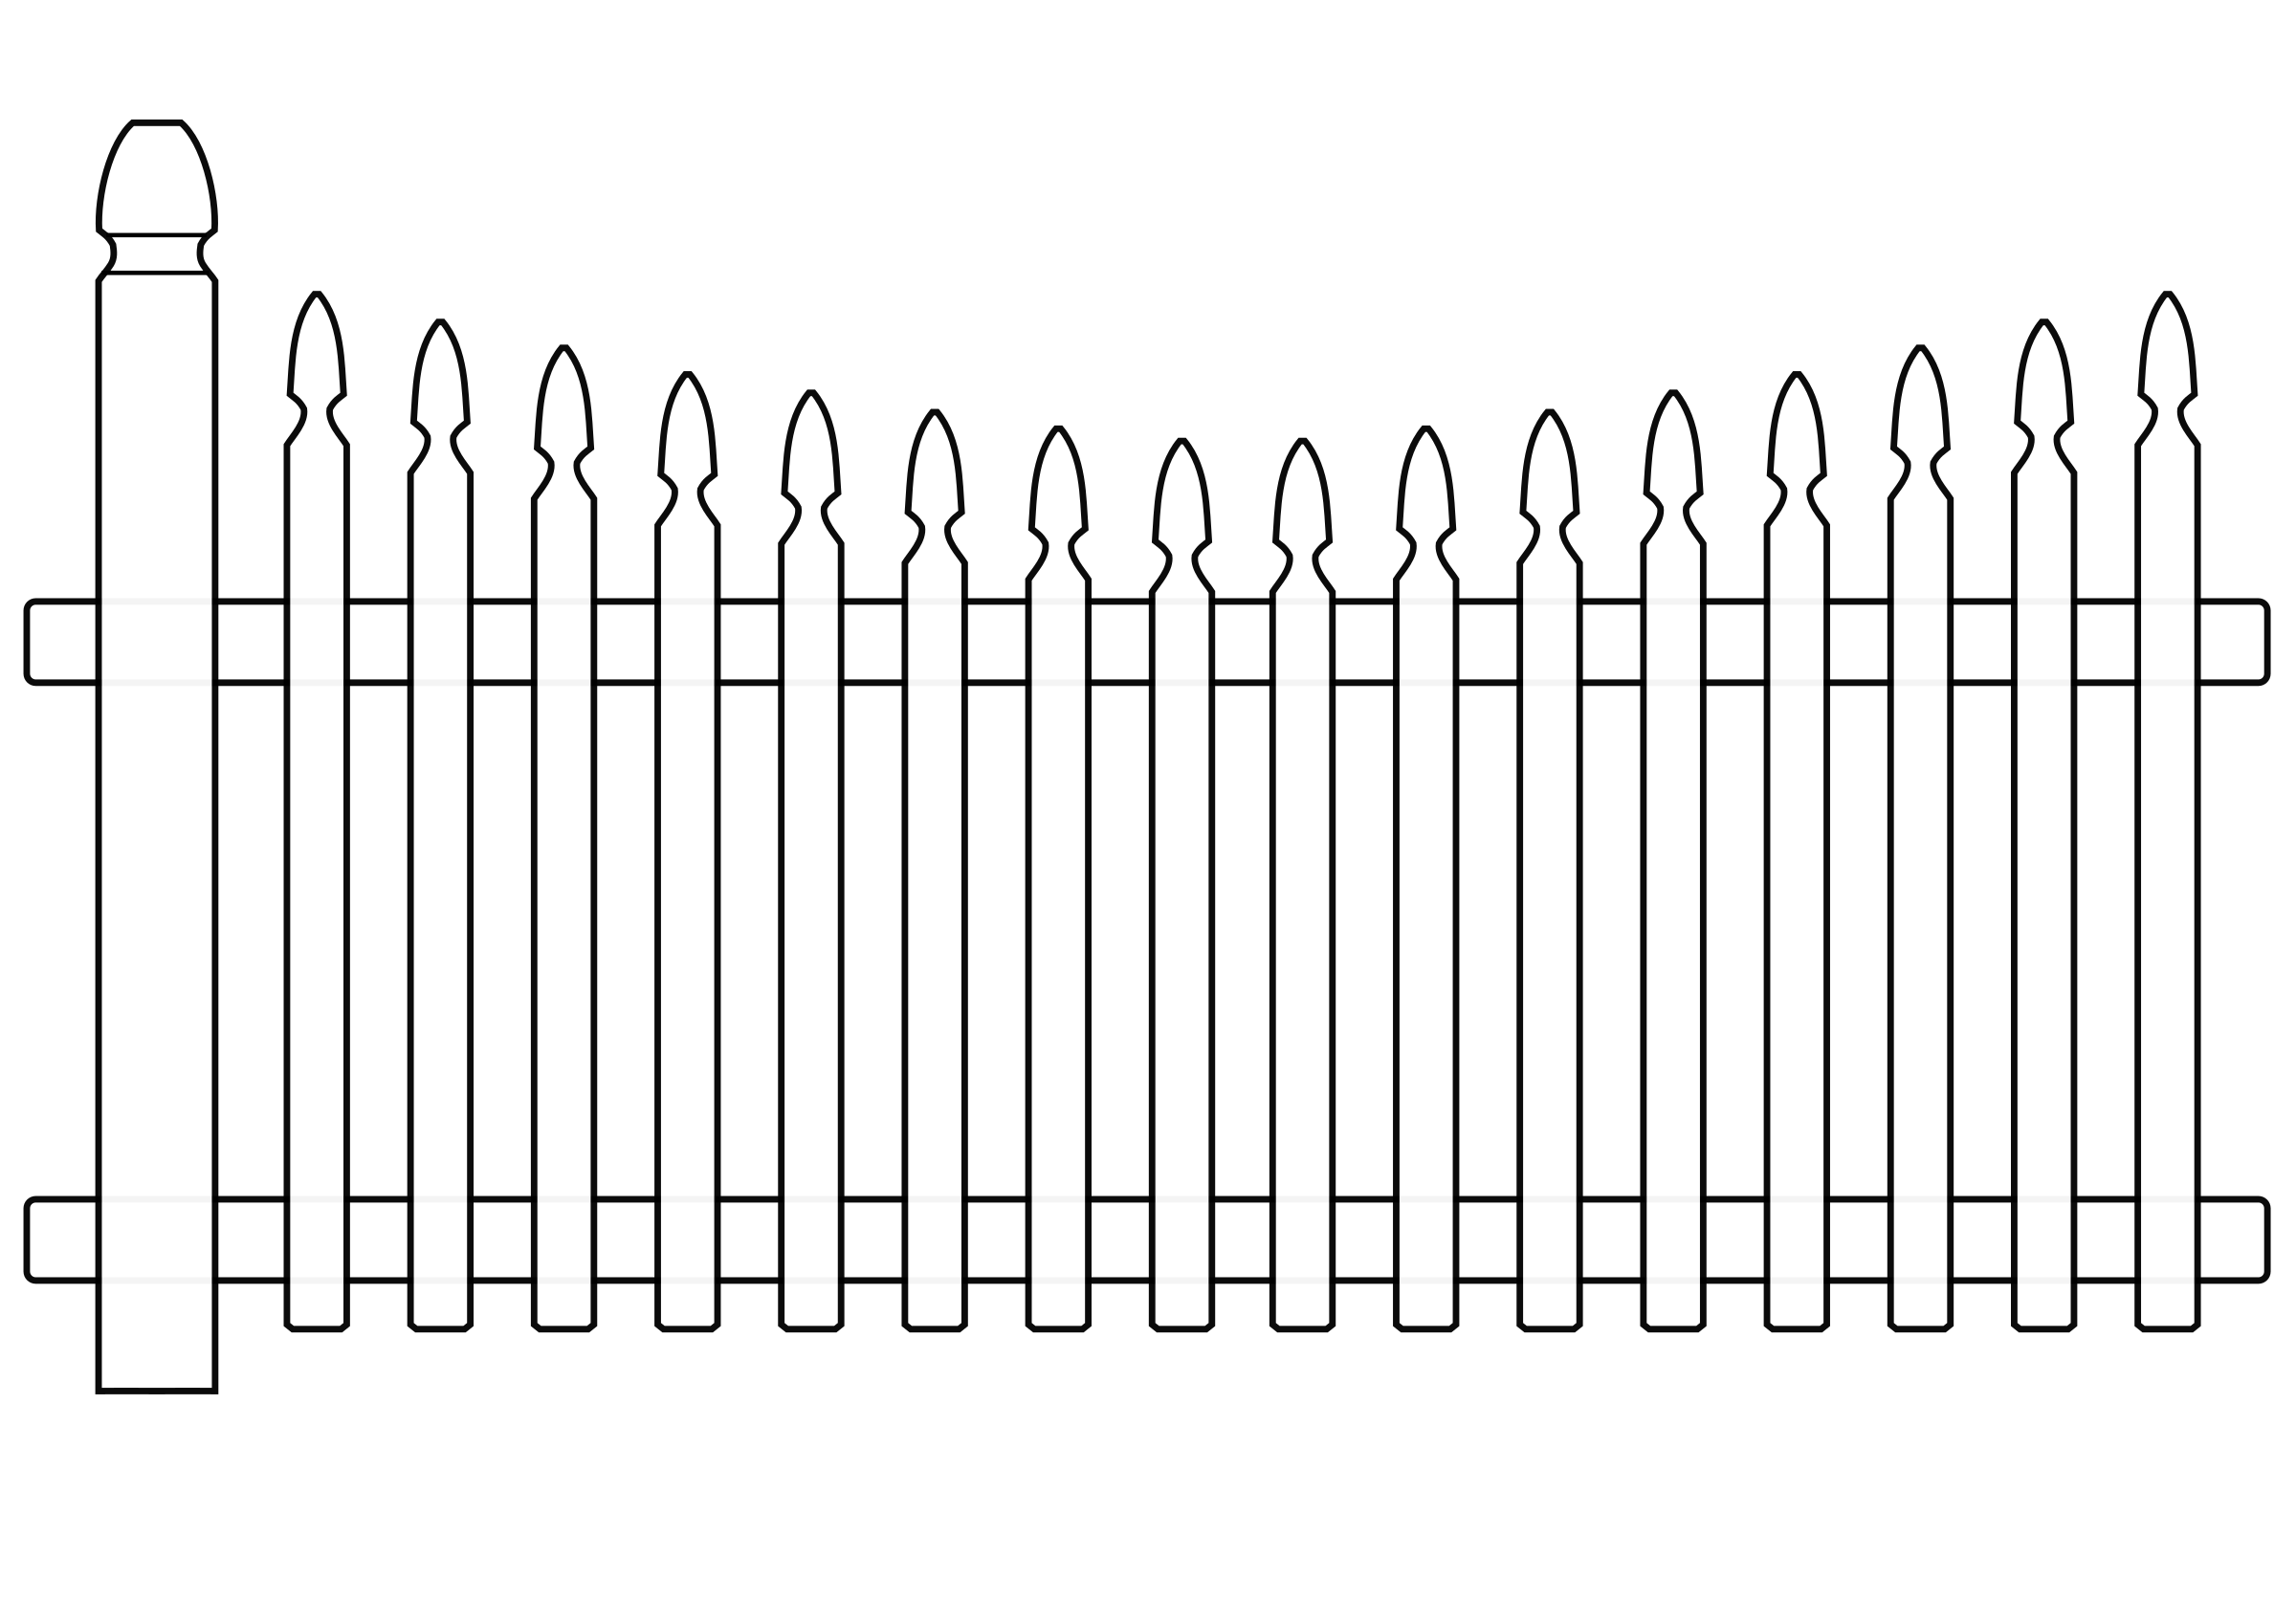 White picket fence clipart png download Free Picket Fence Cliparts, Download Free Clip Art, Free Clip Art on ... png download